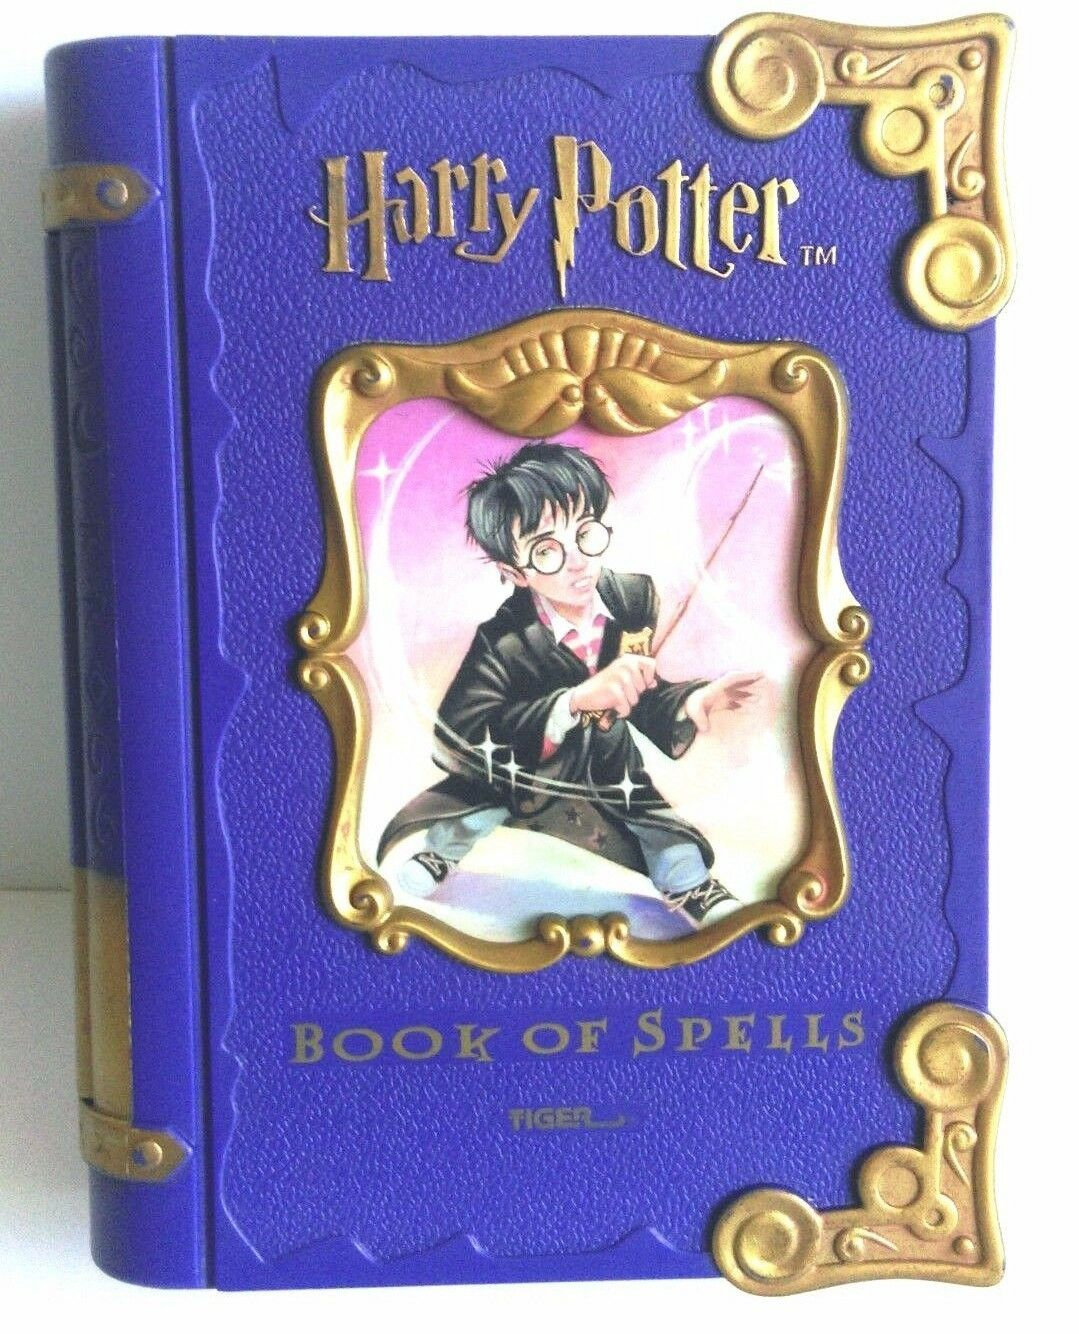 Harry Potter Muppets: Harry Potter Rare Book Of Spells Tiger Electronics Game